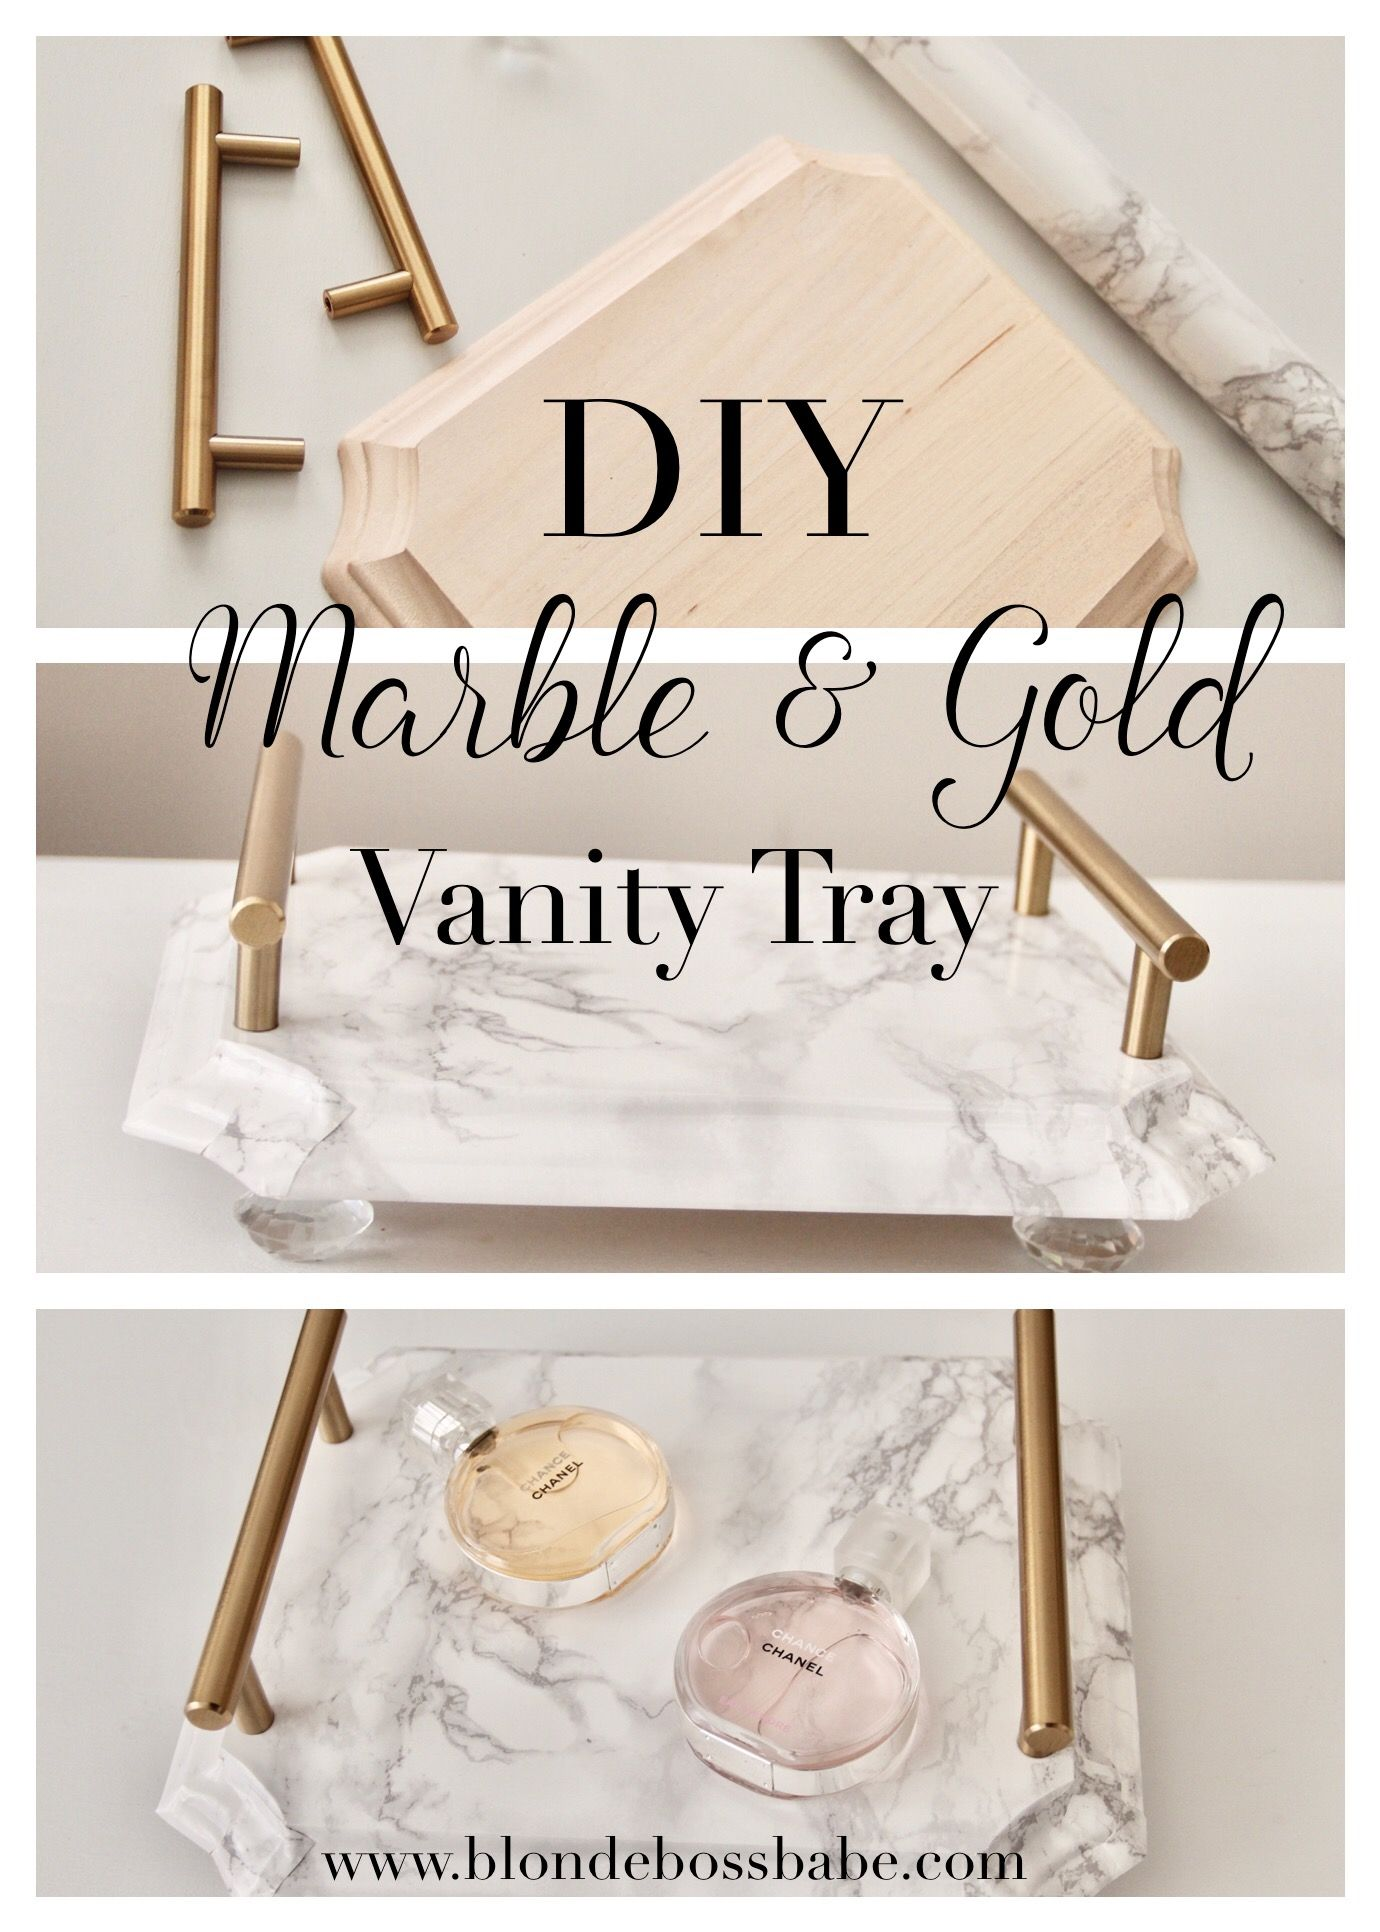 Diy Marble Gold Vanity Tray Easy And Beautiful Home